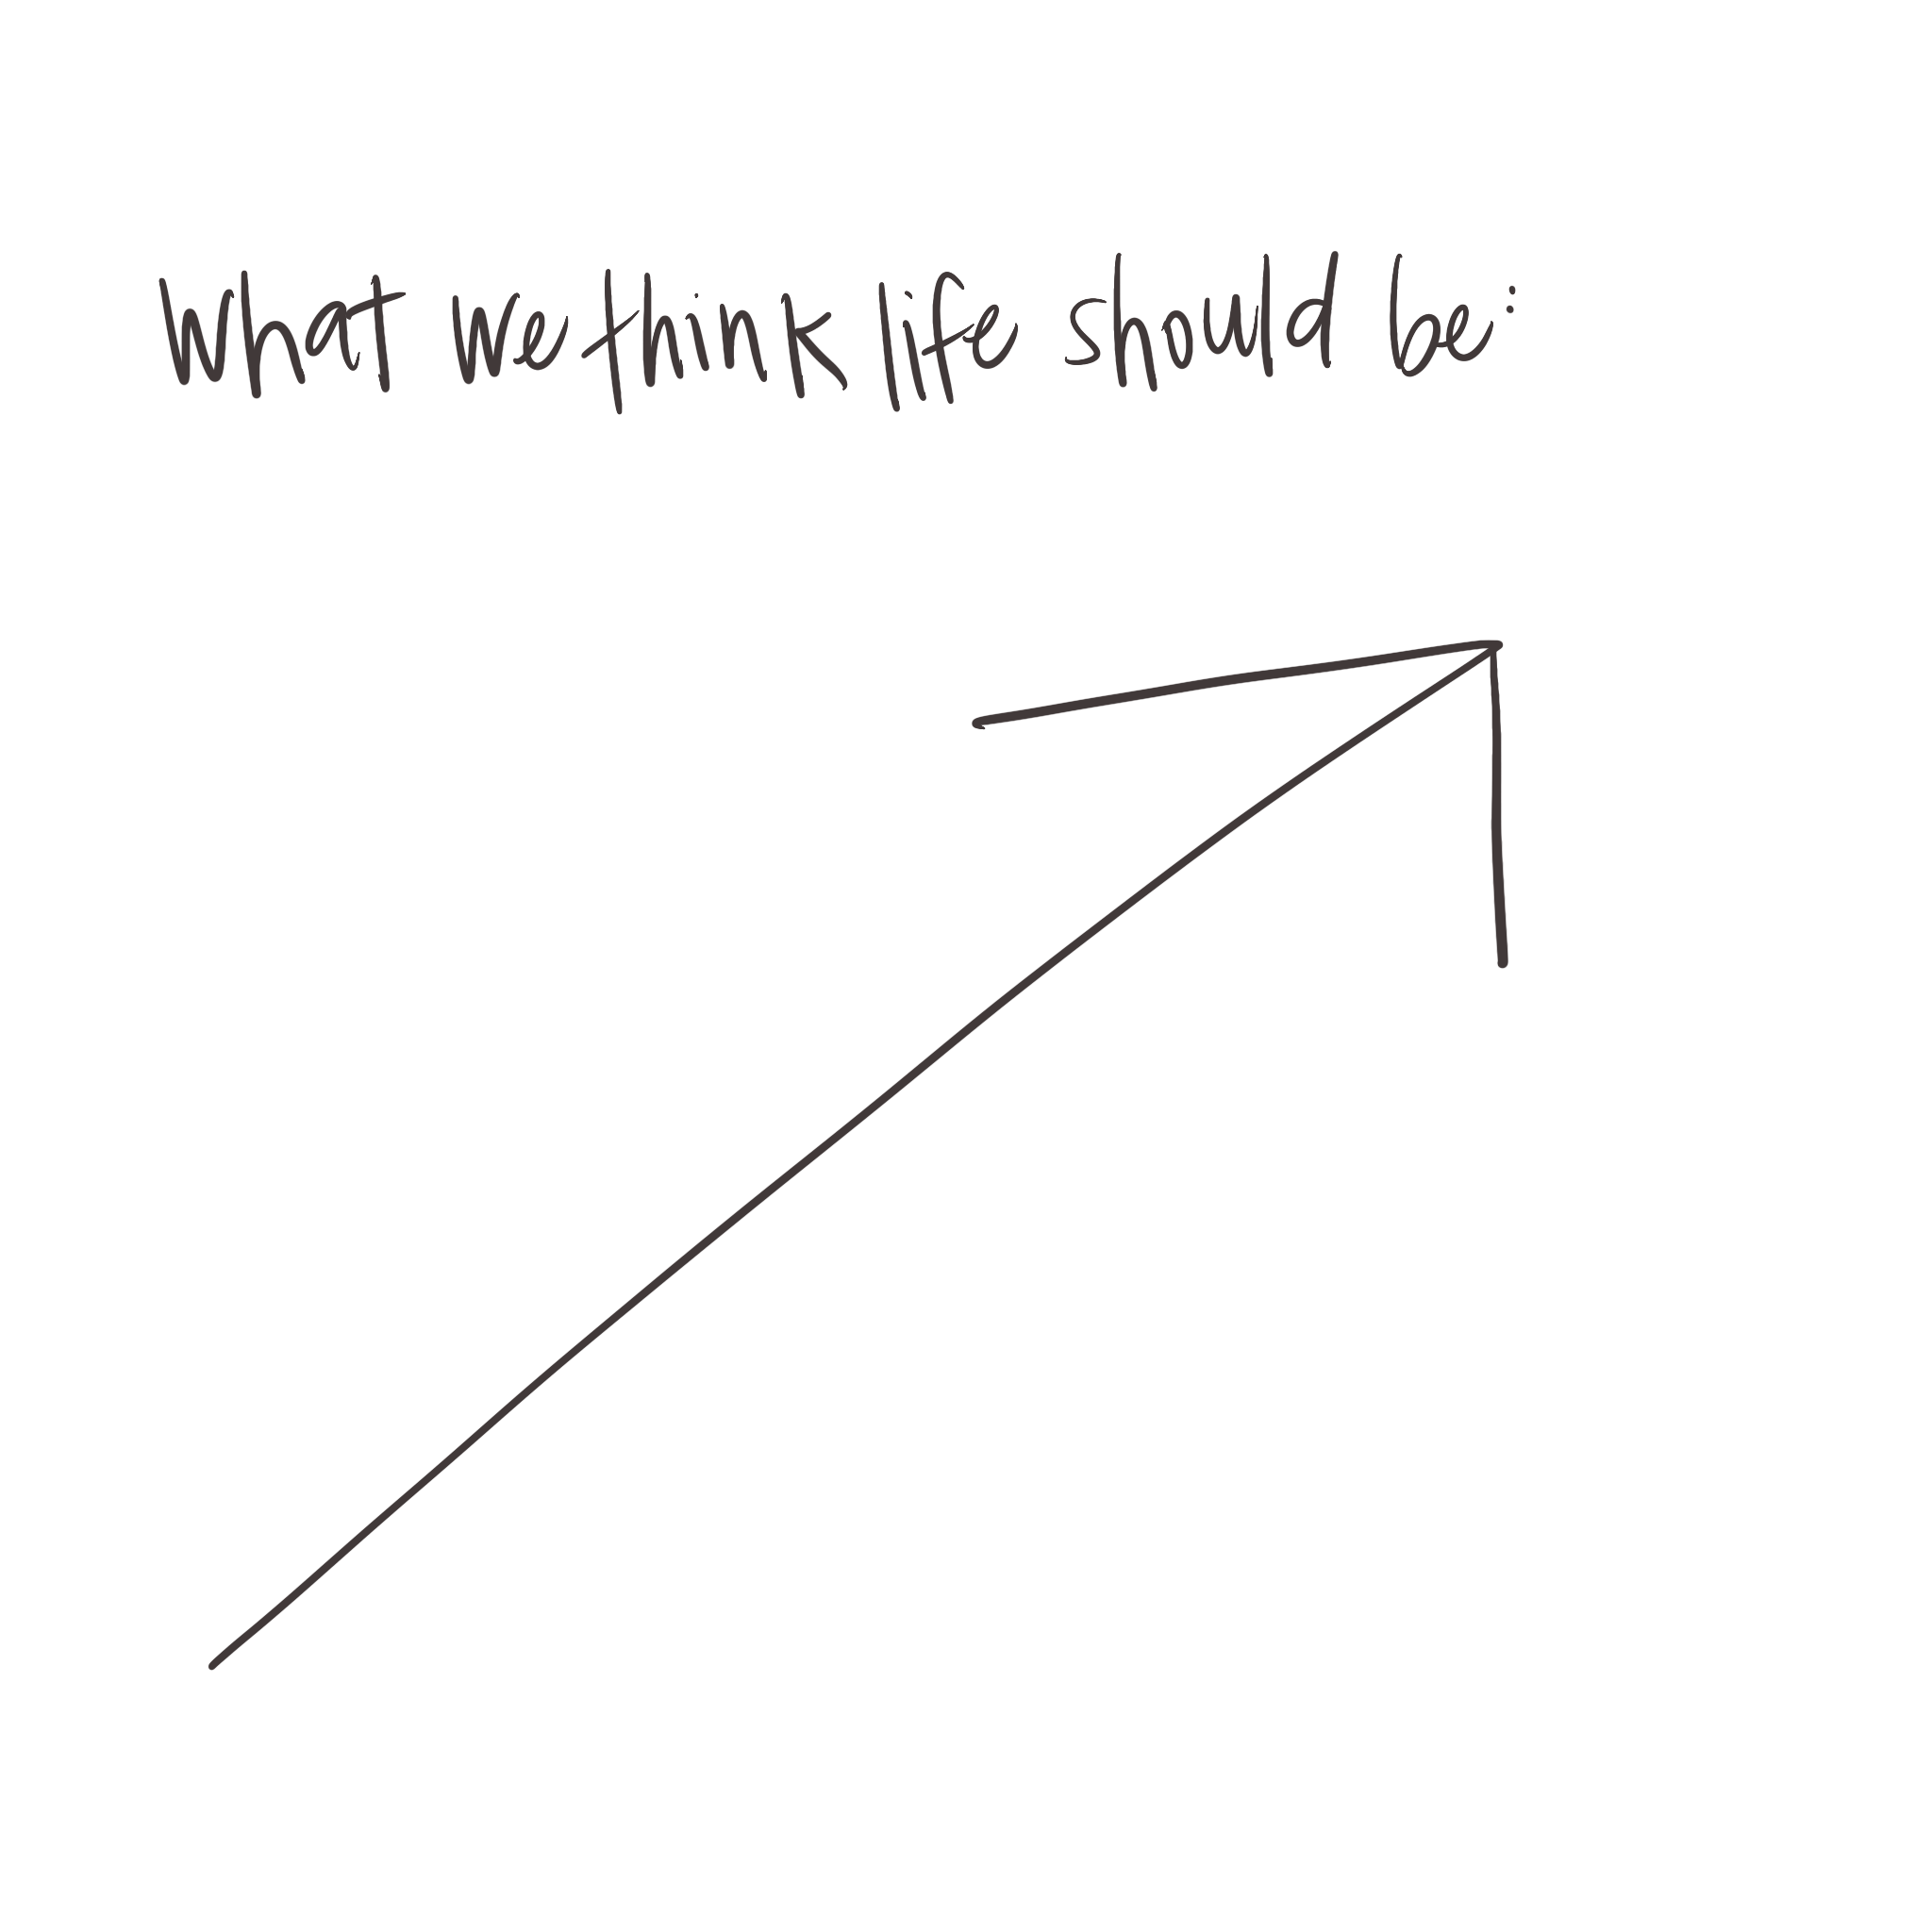 This is usually what we think life should be like, but actually it's not!